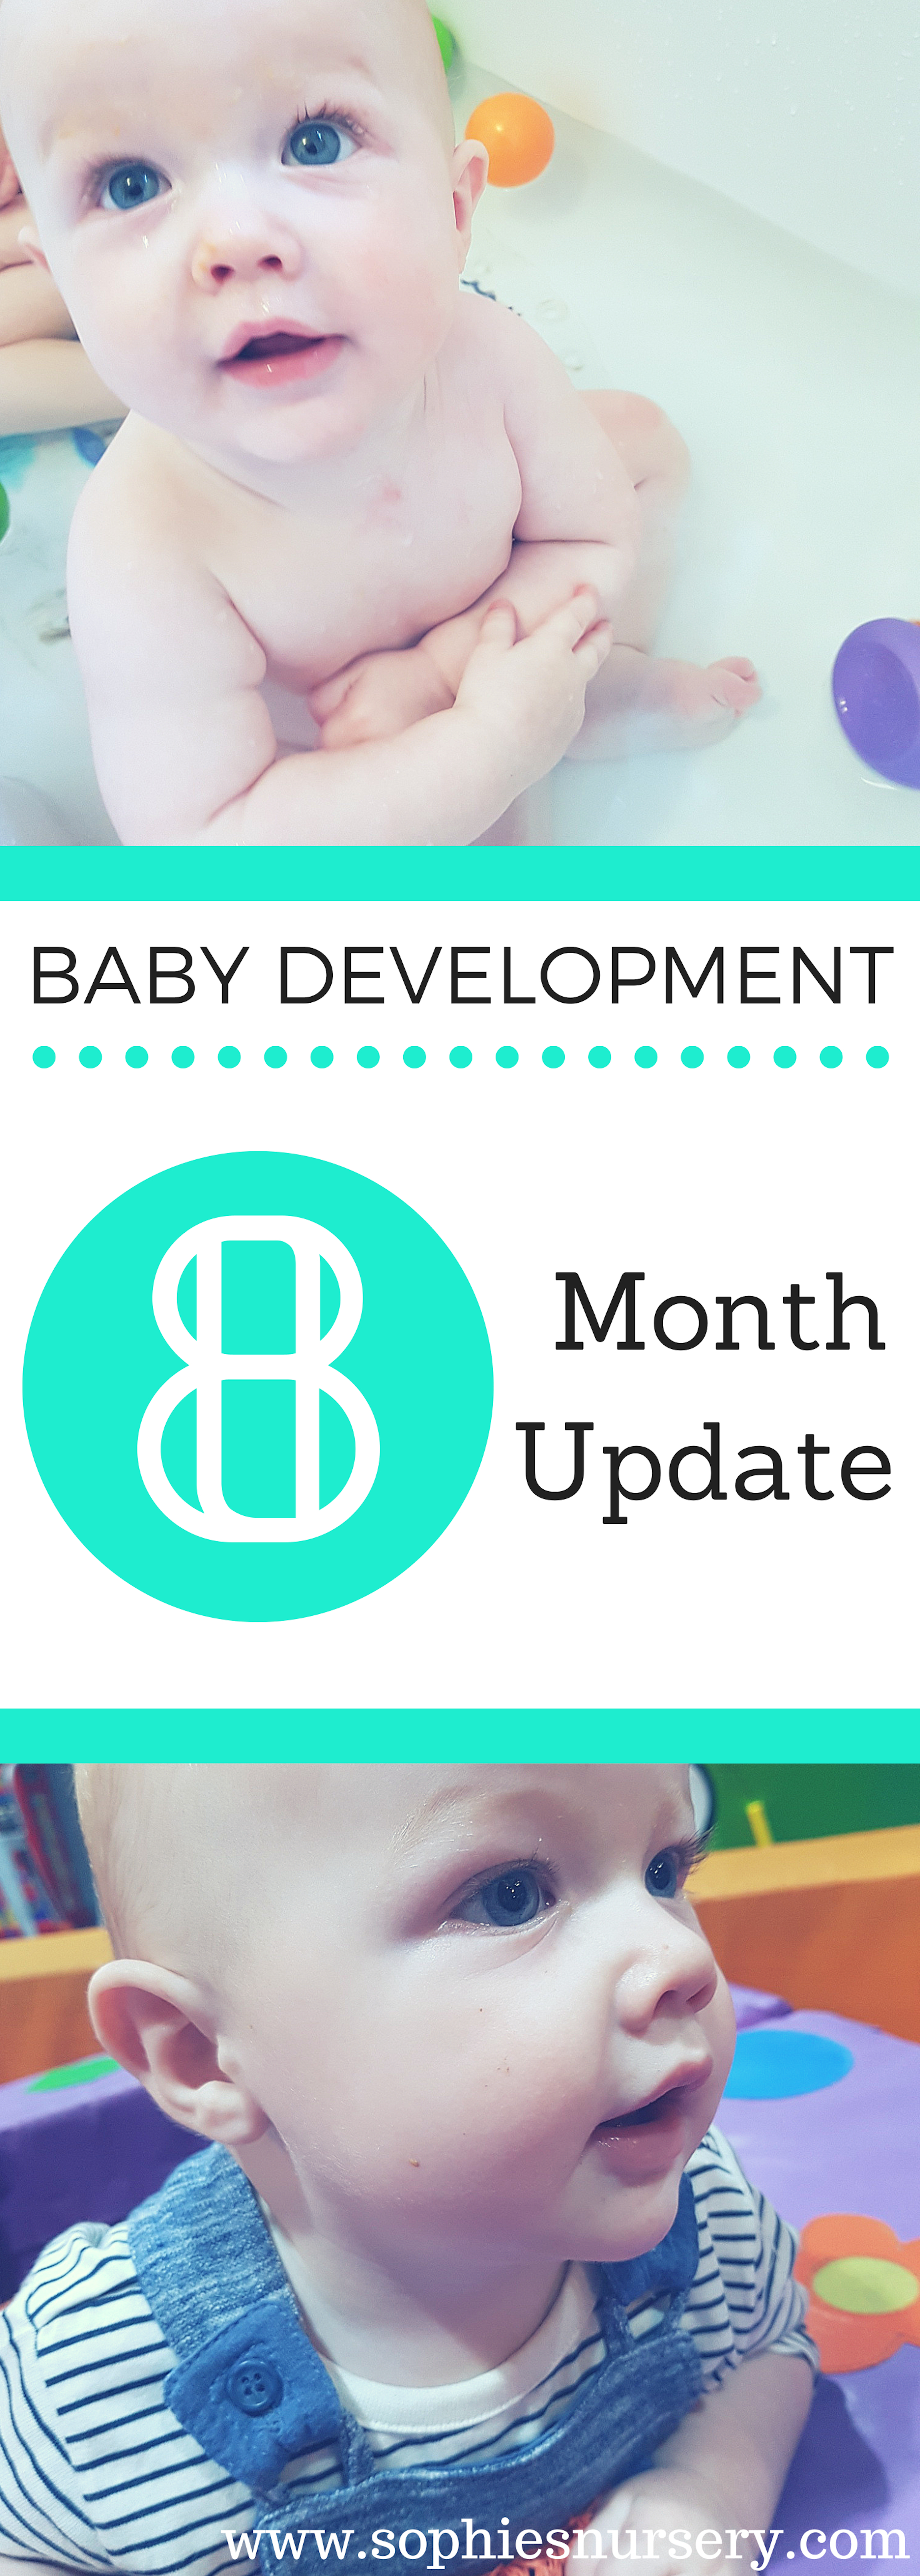 Lots of developmental leaps this month! Take a look at what Charlie's been up to & milestones reached in our baby development at 8 months update!  #baby #babydevelopment #monthlyupdate #milestones #parenting